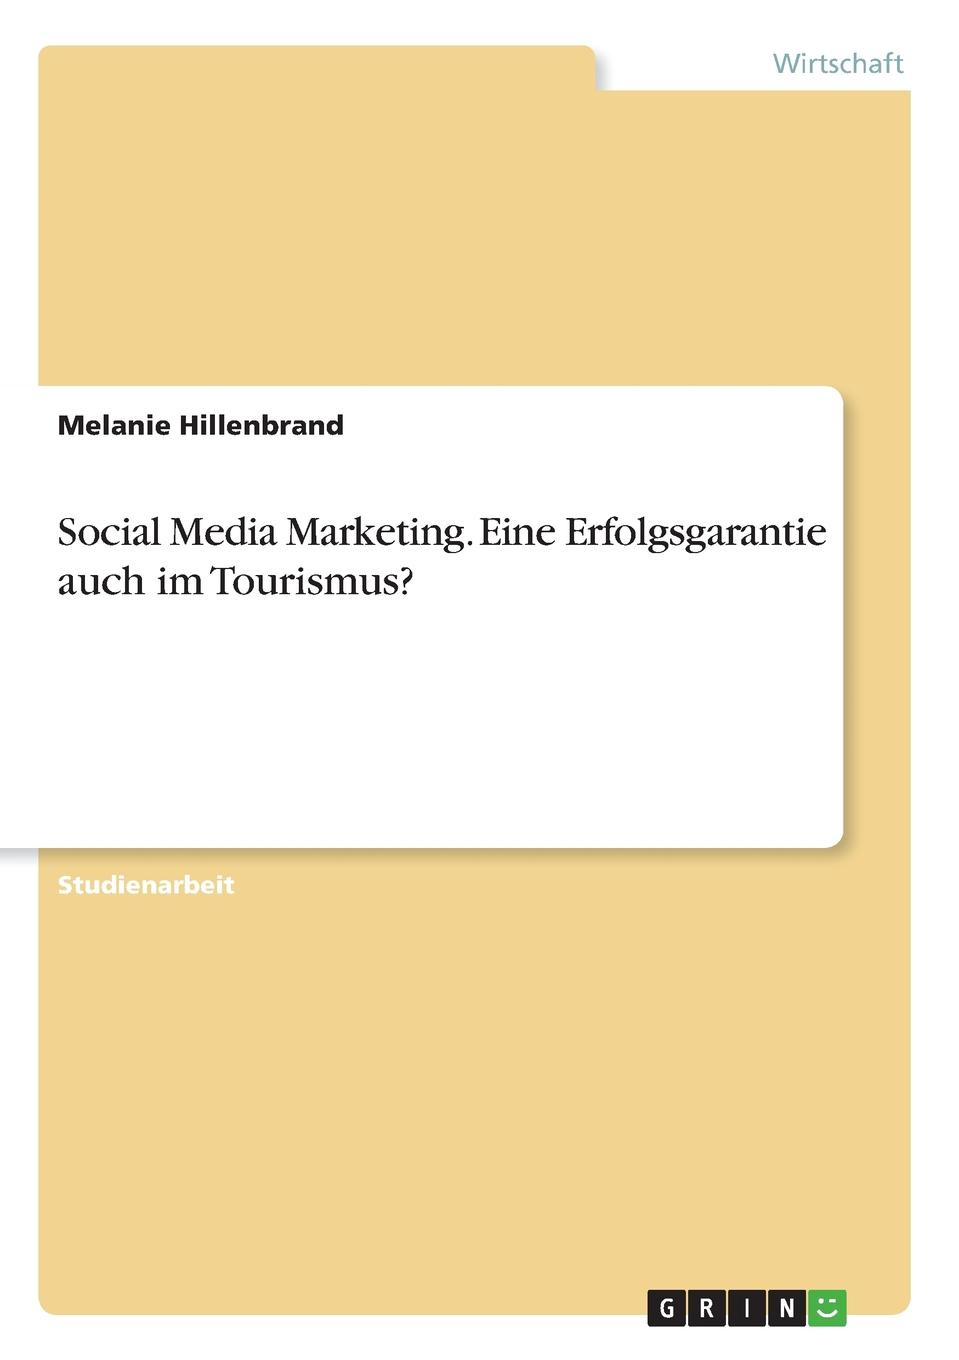 Melanie Hillenbrand Social Media Marketing. Eine Erfolgsgarantie auch im Tourismus. неустановленный автор influencer marketing in sozialen netzwerken als strategisches instrument im social media marketing